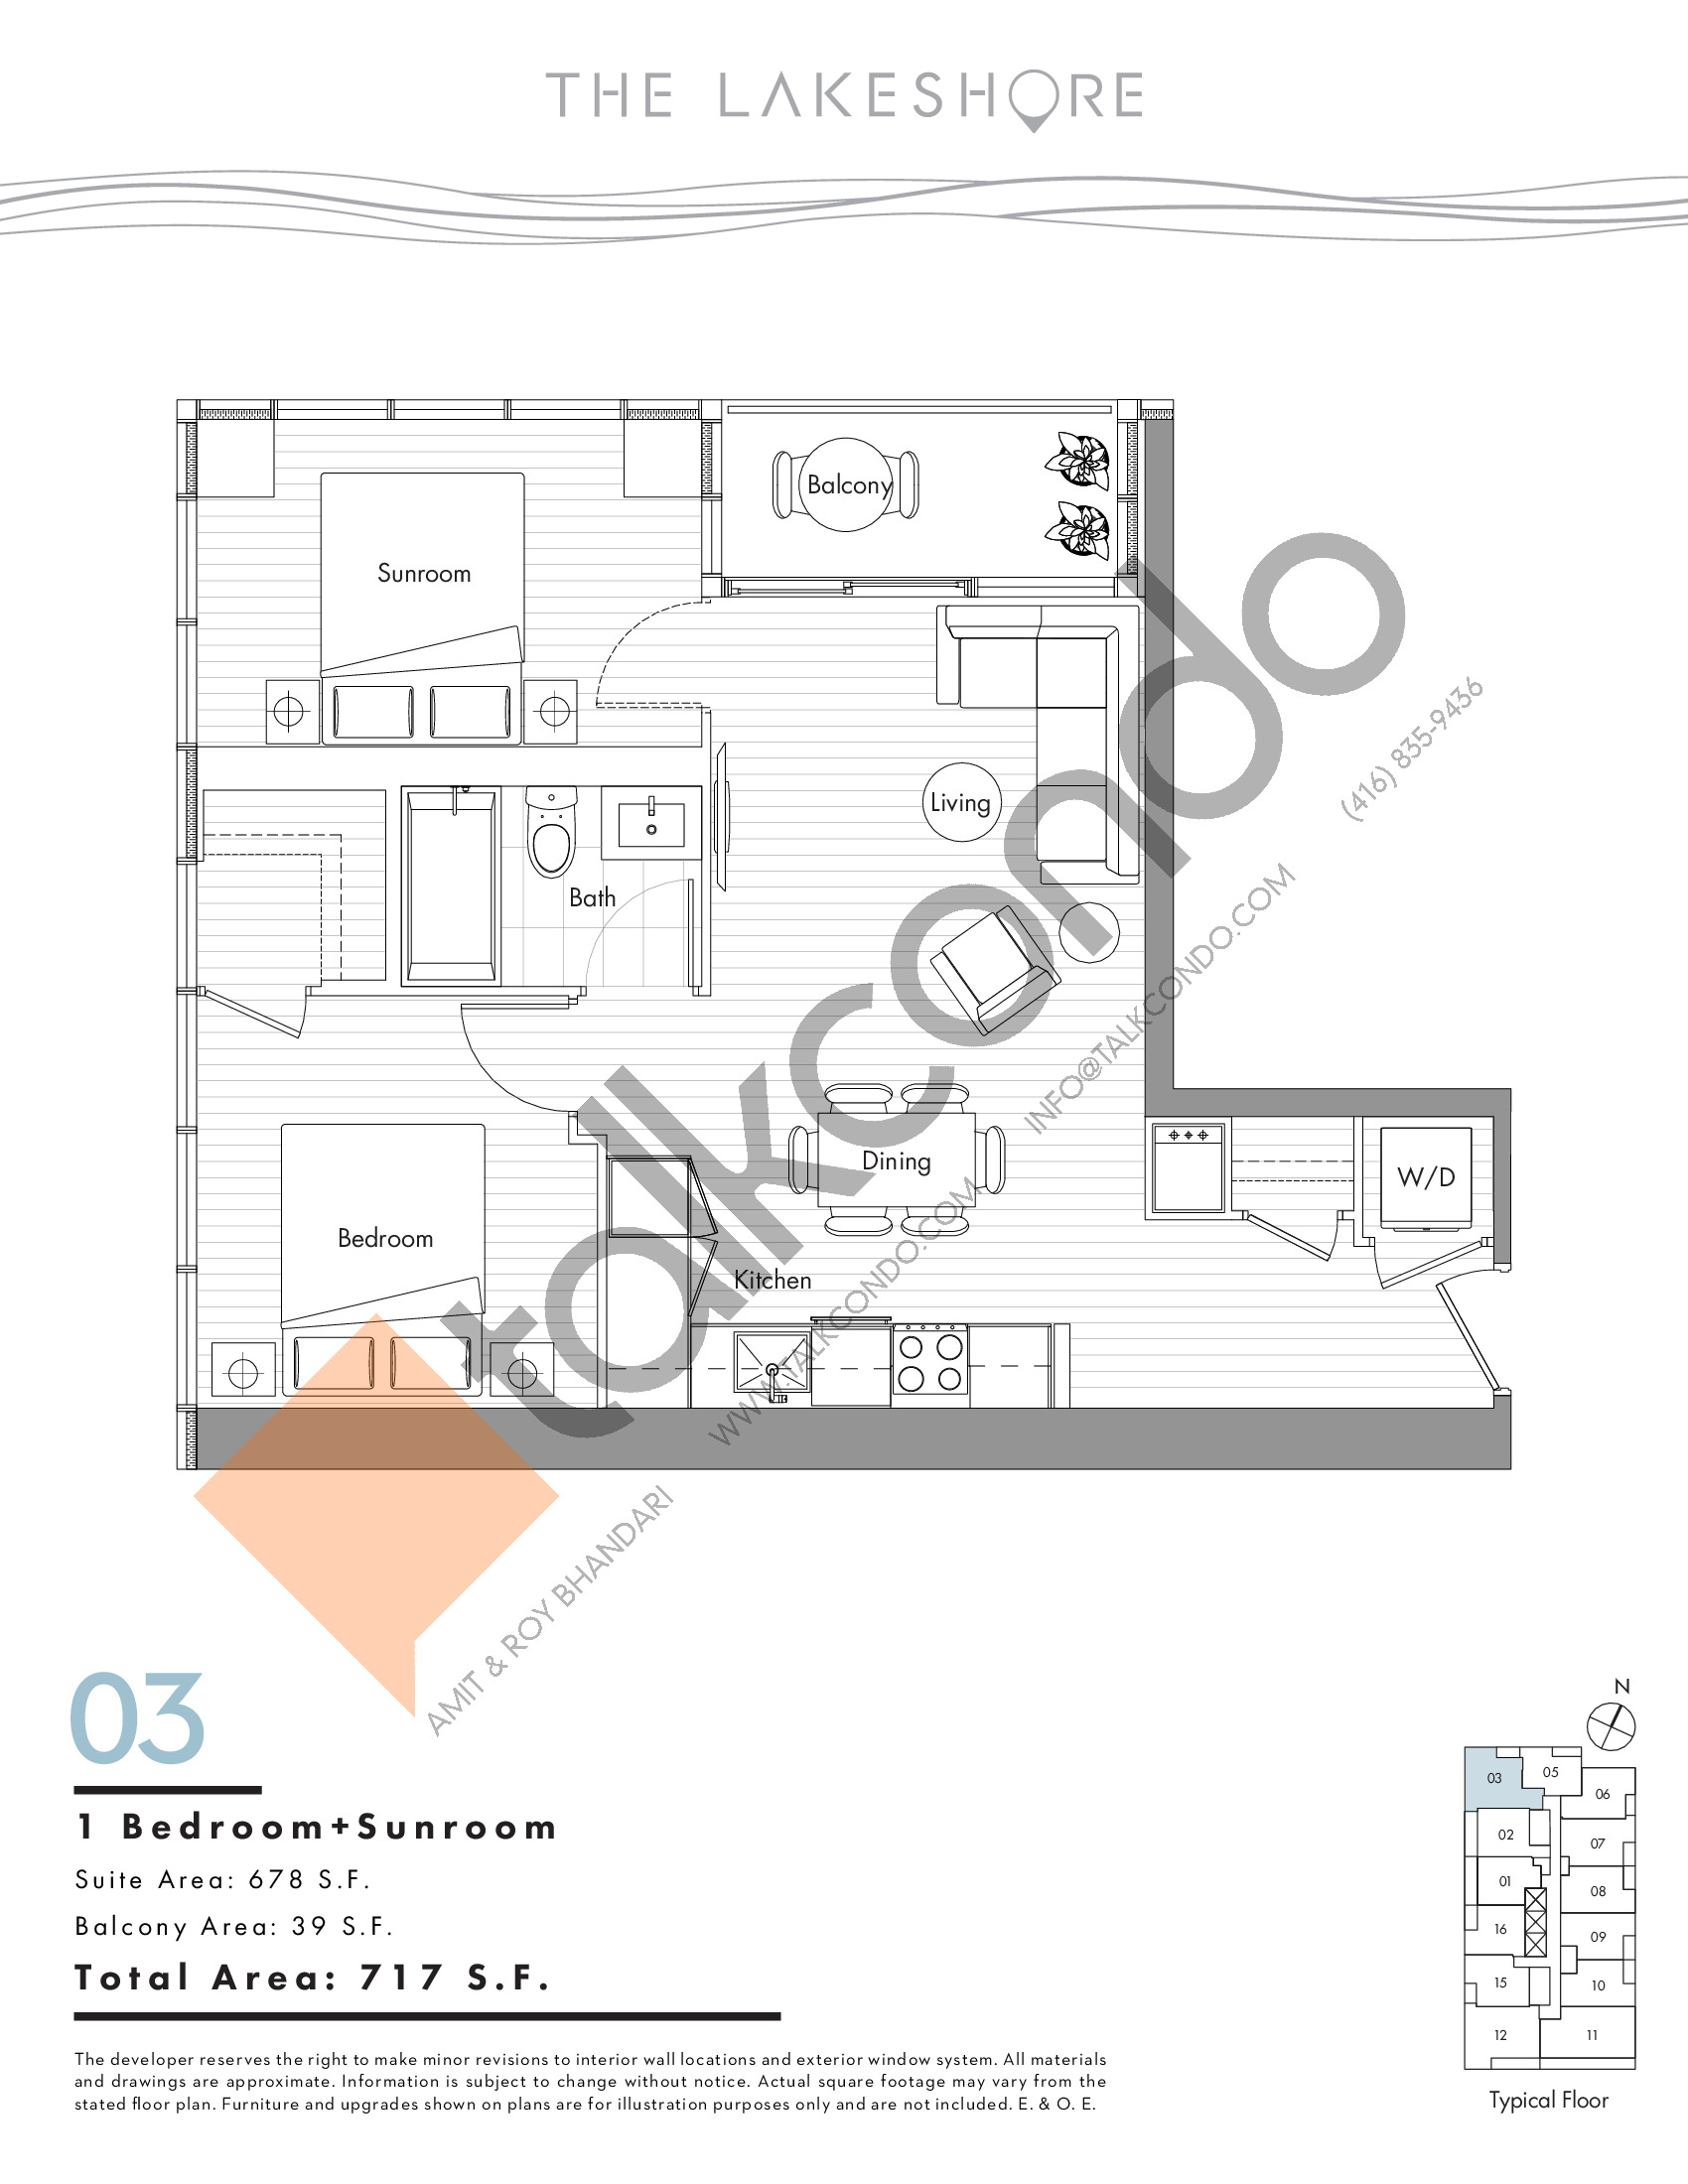 03 Floor Plan at The LakeShore Condos - 678 sq.ft